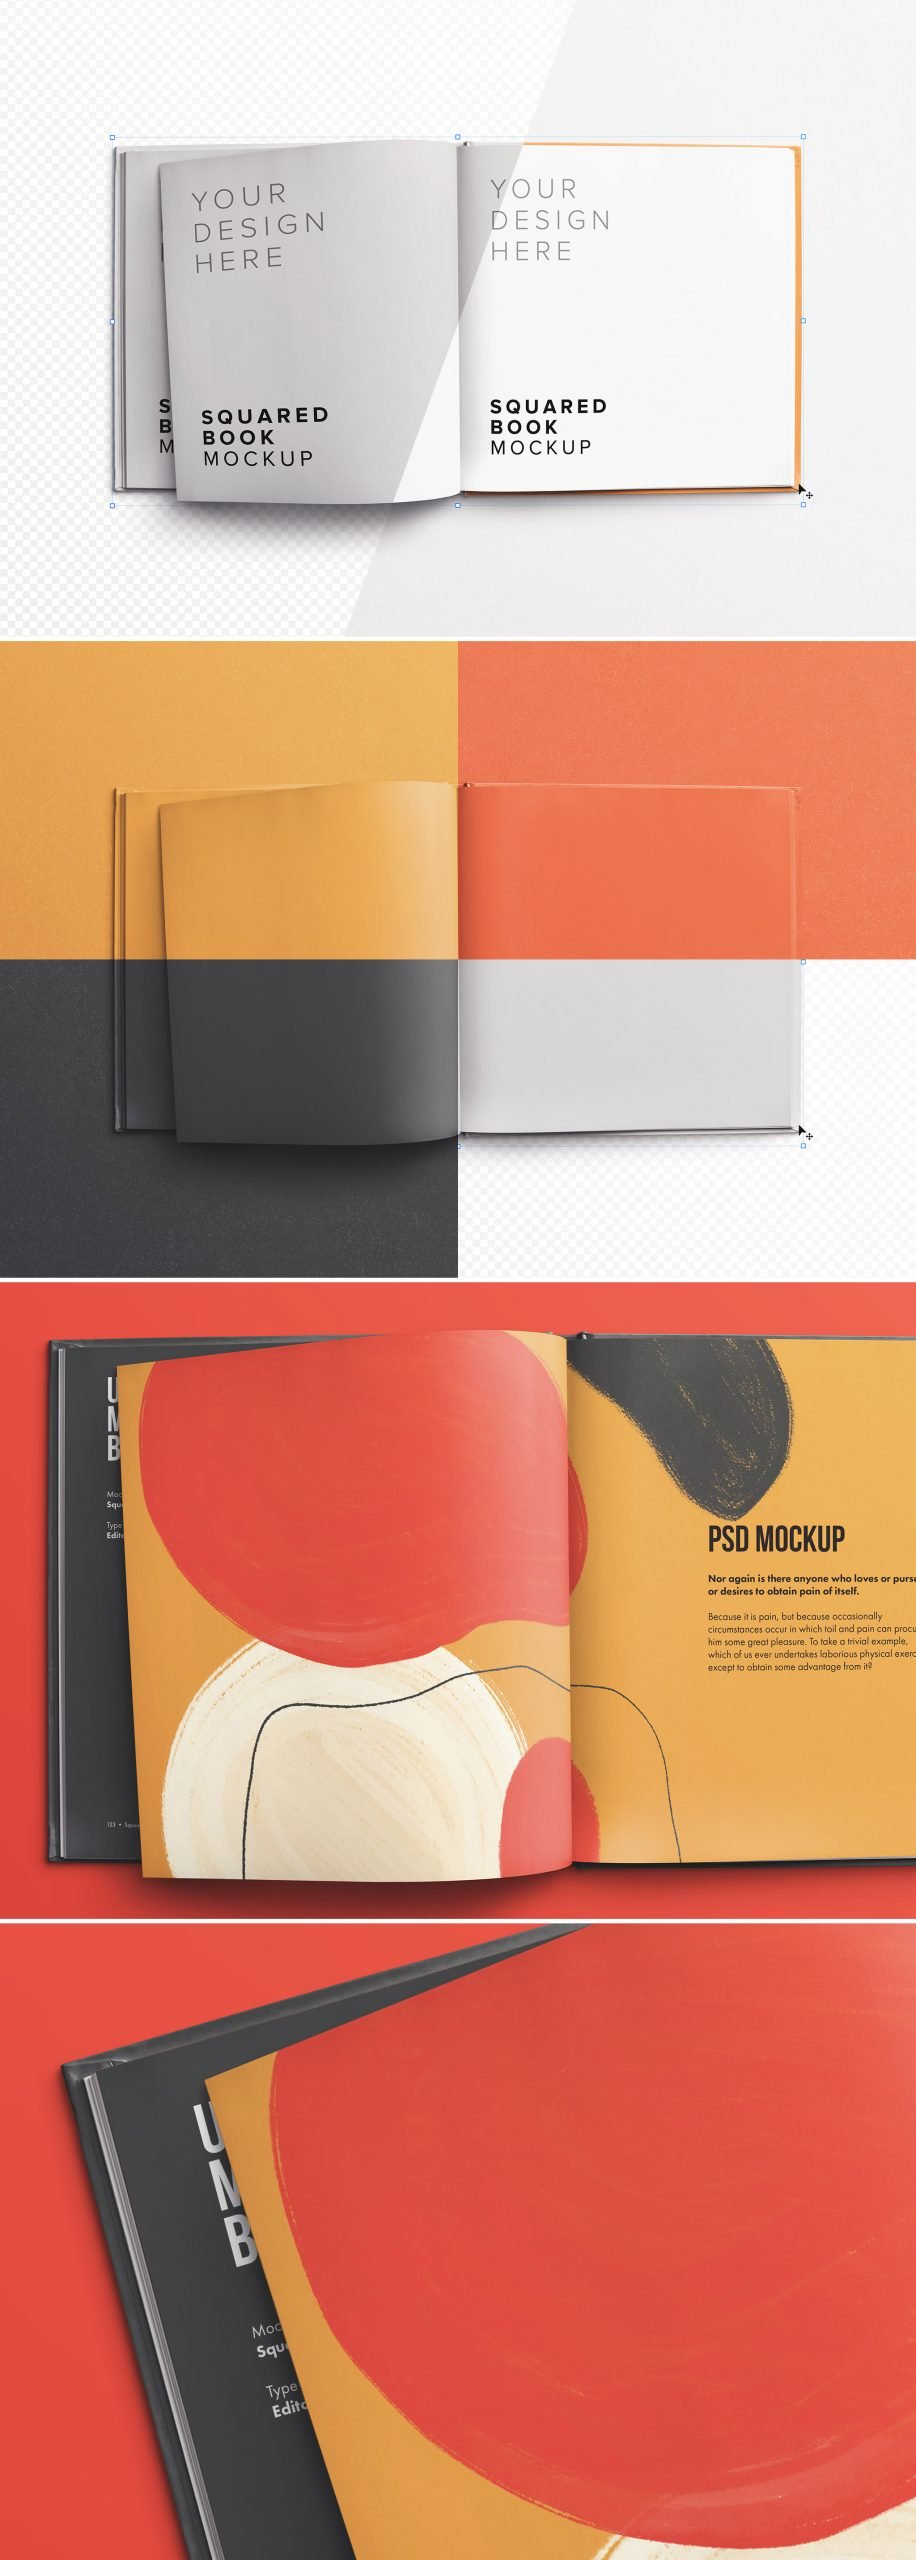 book squared opened left 2 page mockup Preview1 scaled